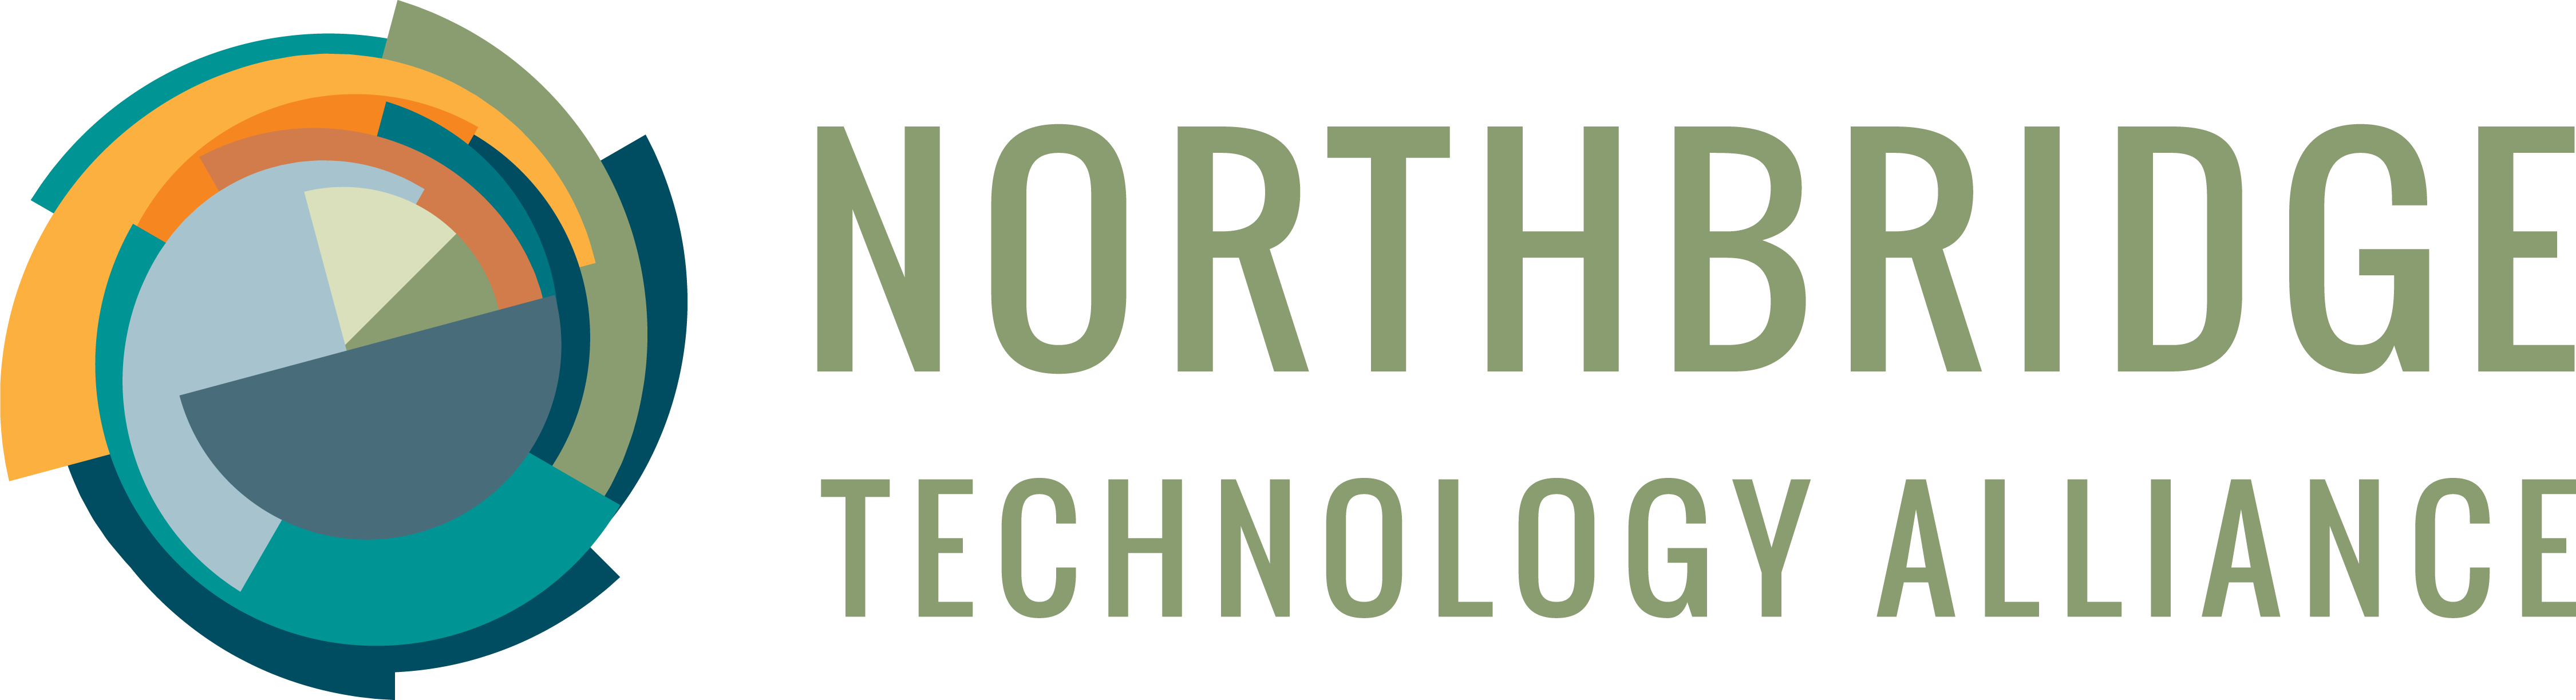 Northbridge Technology Alliance